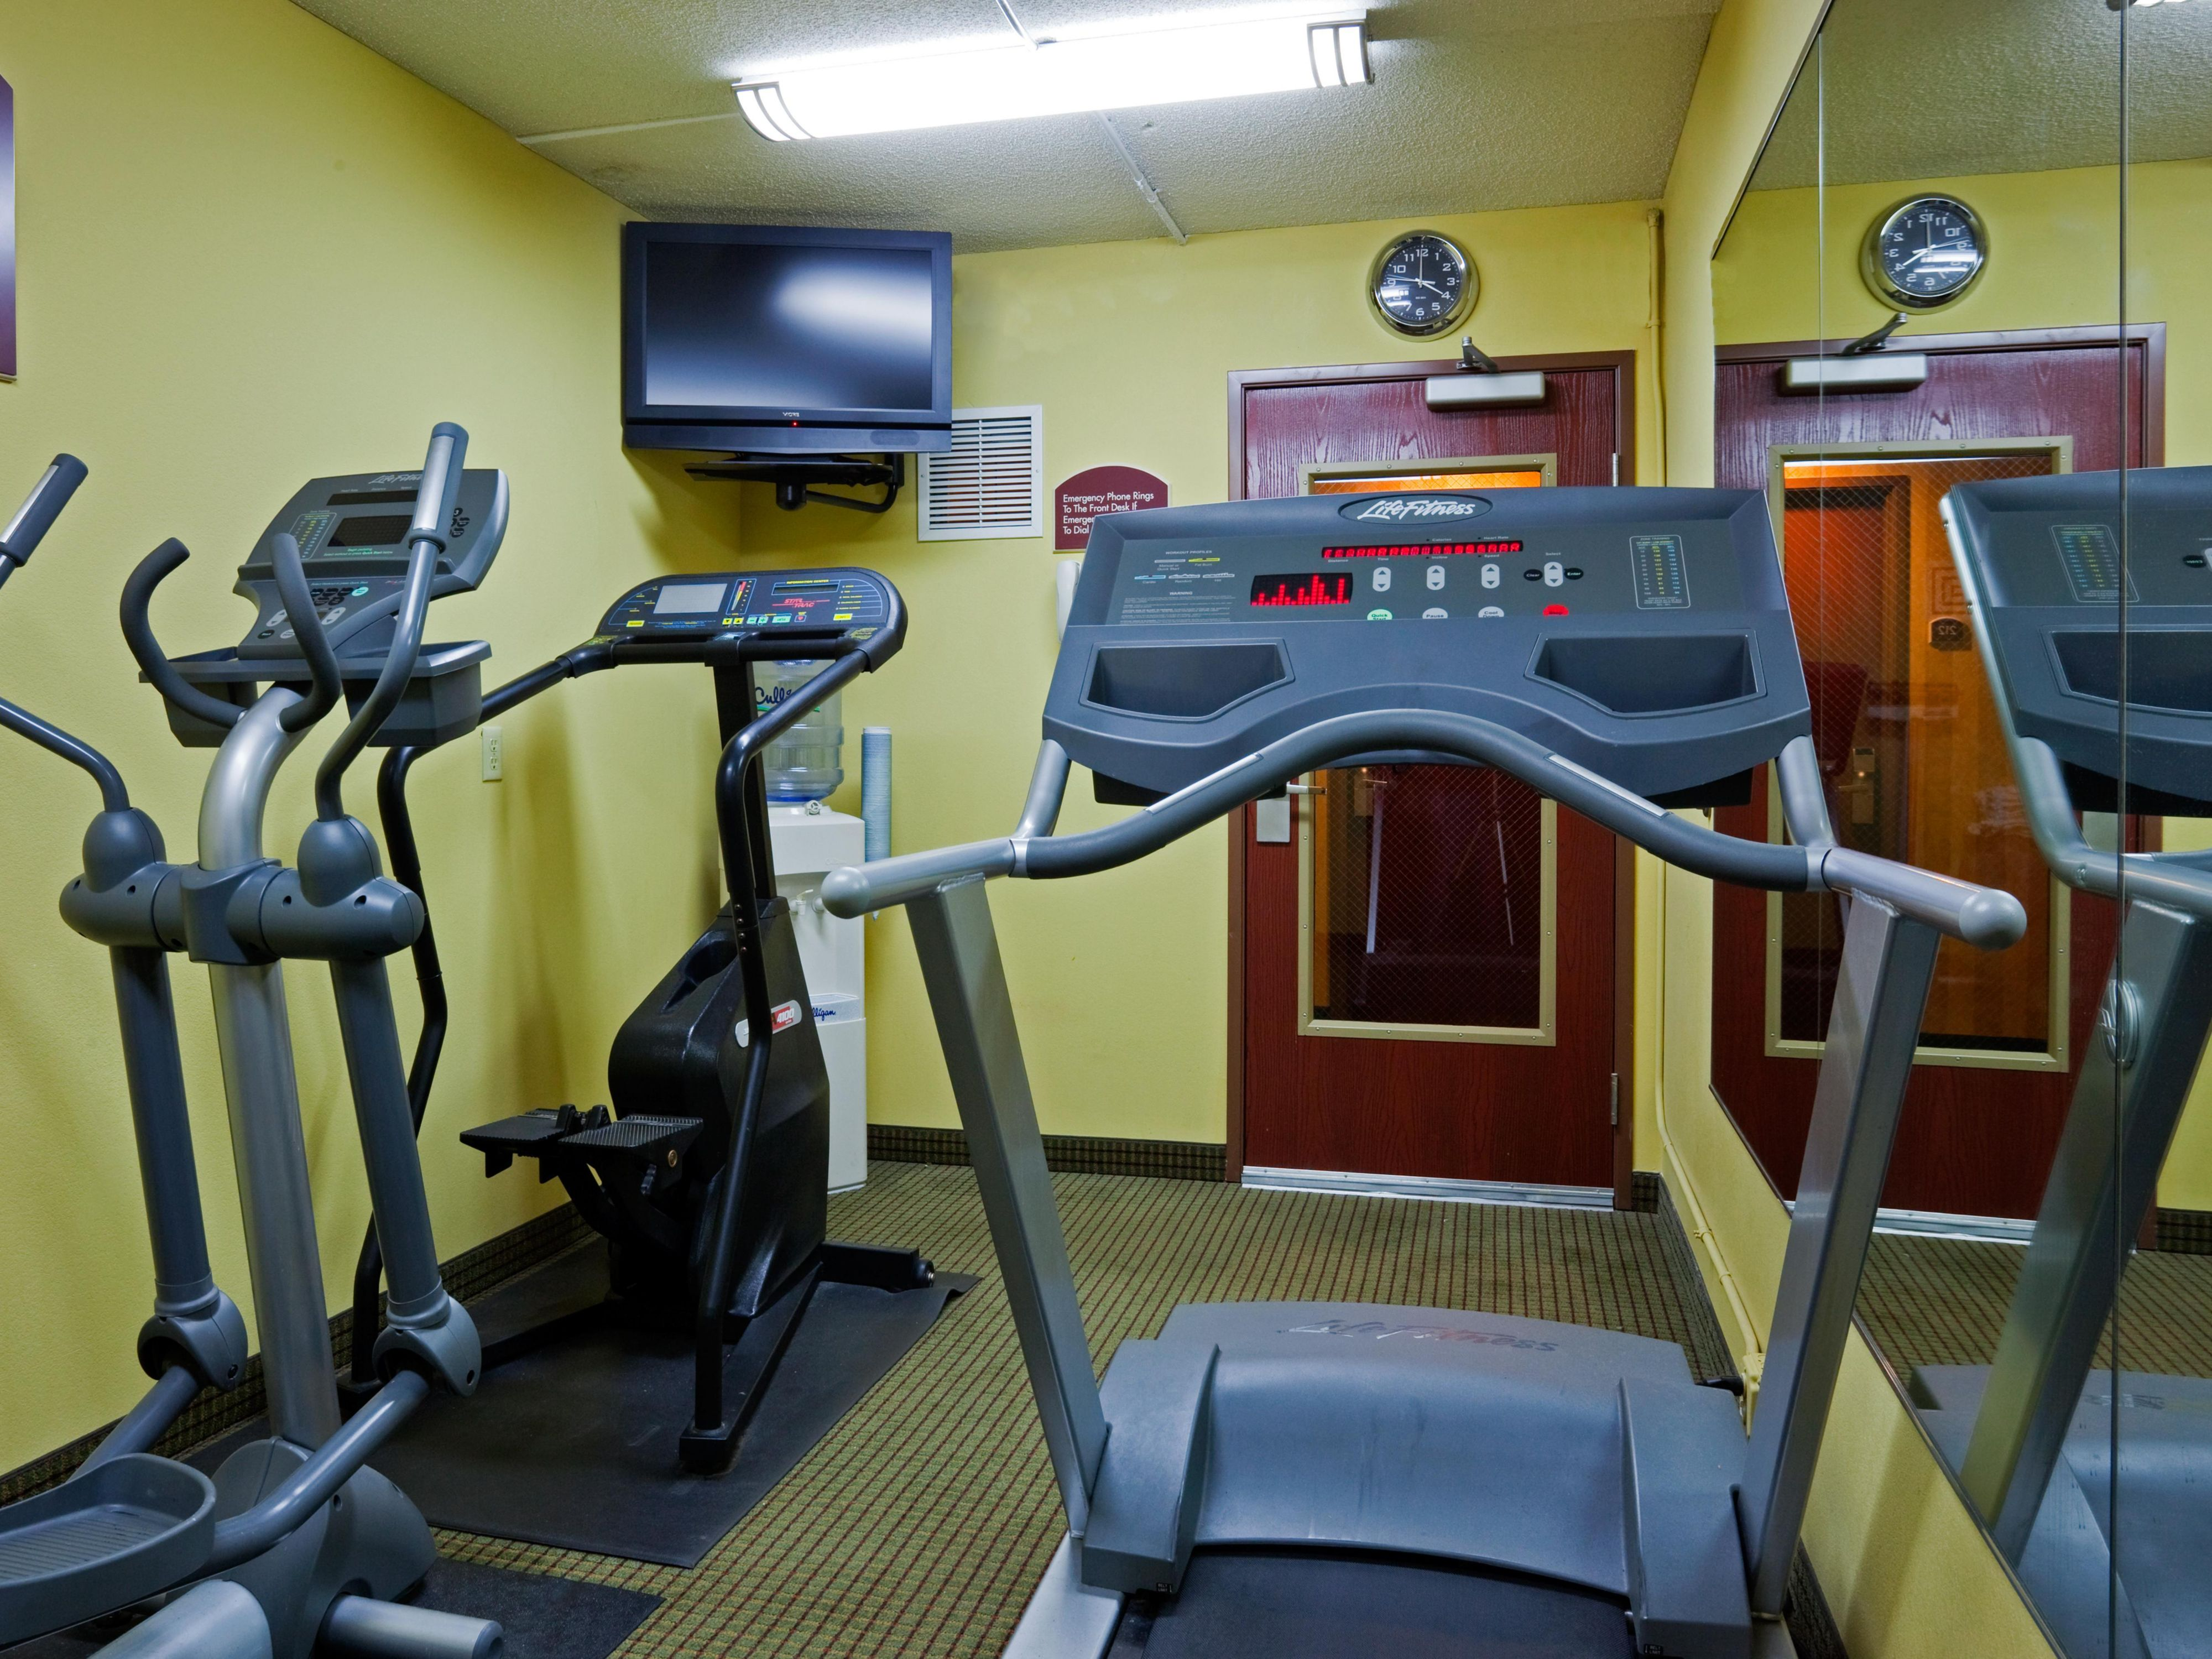 Get in a quick workout in our fitness center